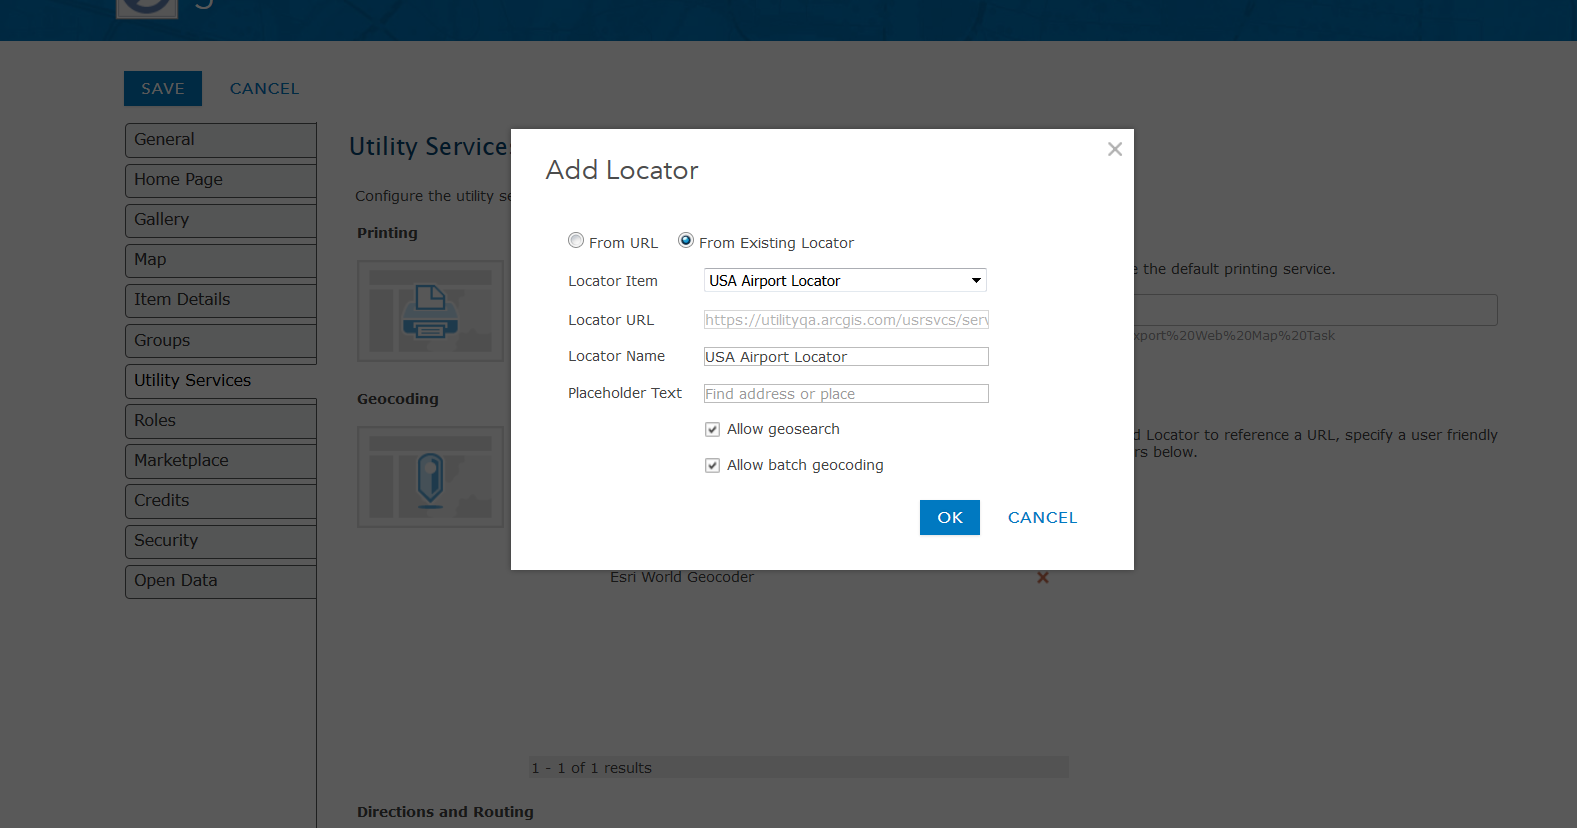 Customize your Geocoding experience with Locator Views